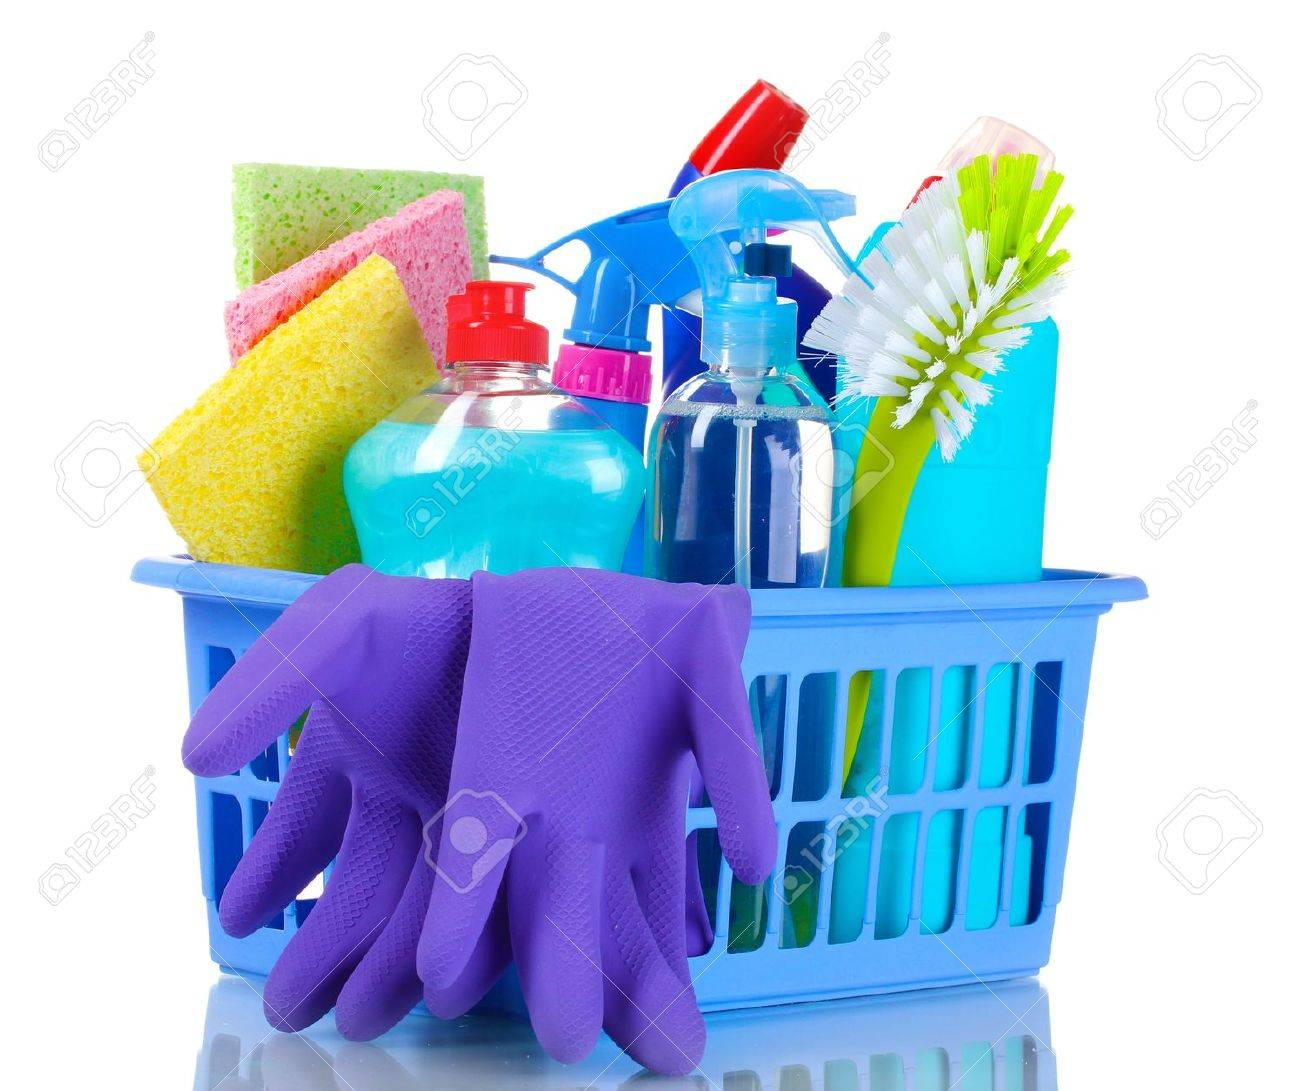 full box of cleaning supplies and gloves isolated on white Stock Photo - 10574050